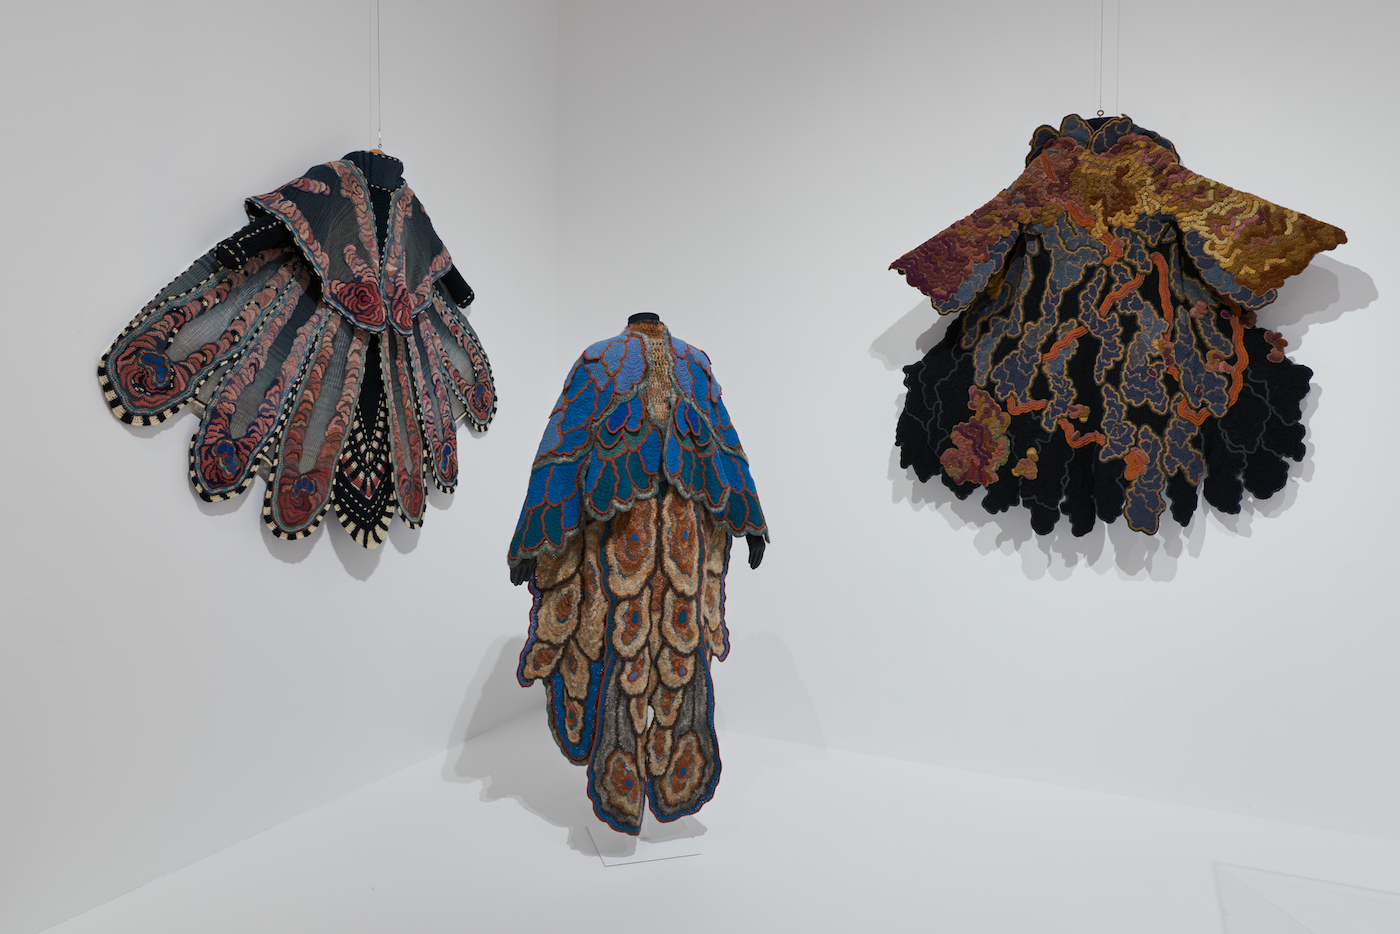 Installation view of Off the Wall: American Art to Wear at the Philadelphia Museum of Art, with work by Sharron Hedges (courtesy Philadelphia Museum of Art)